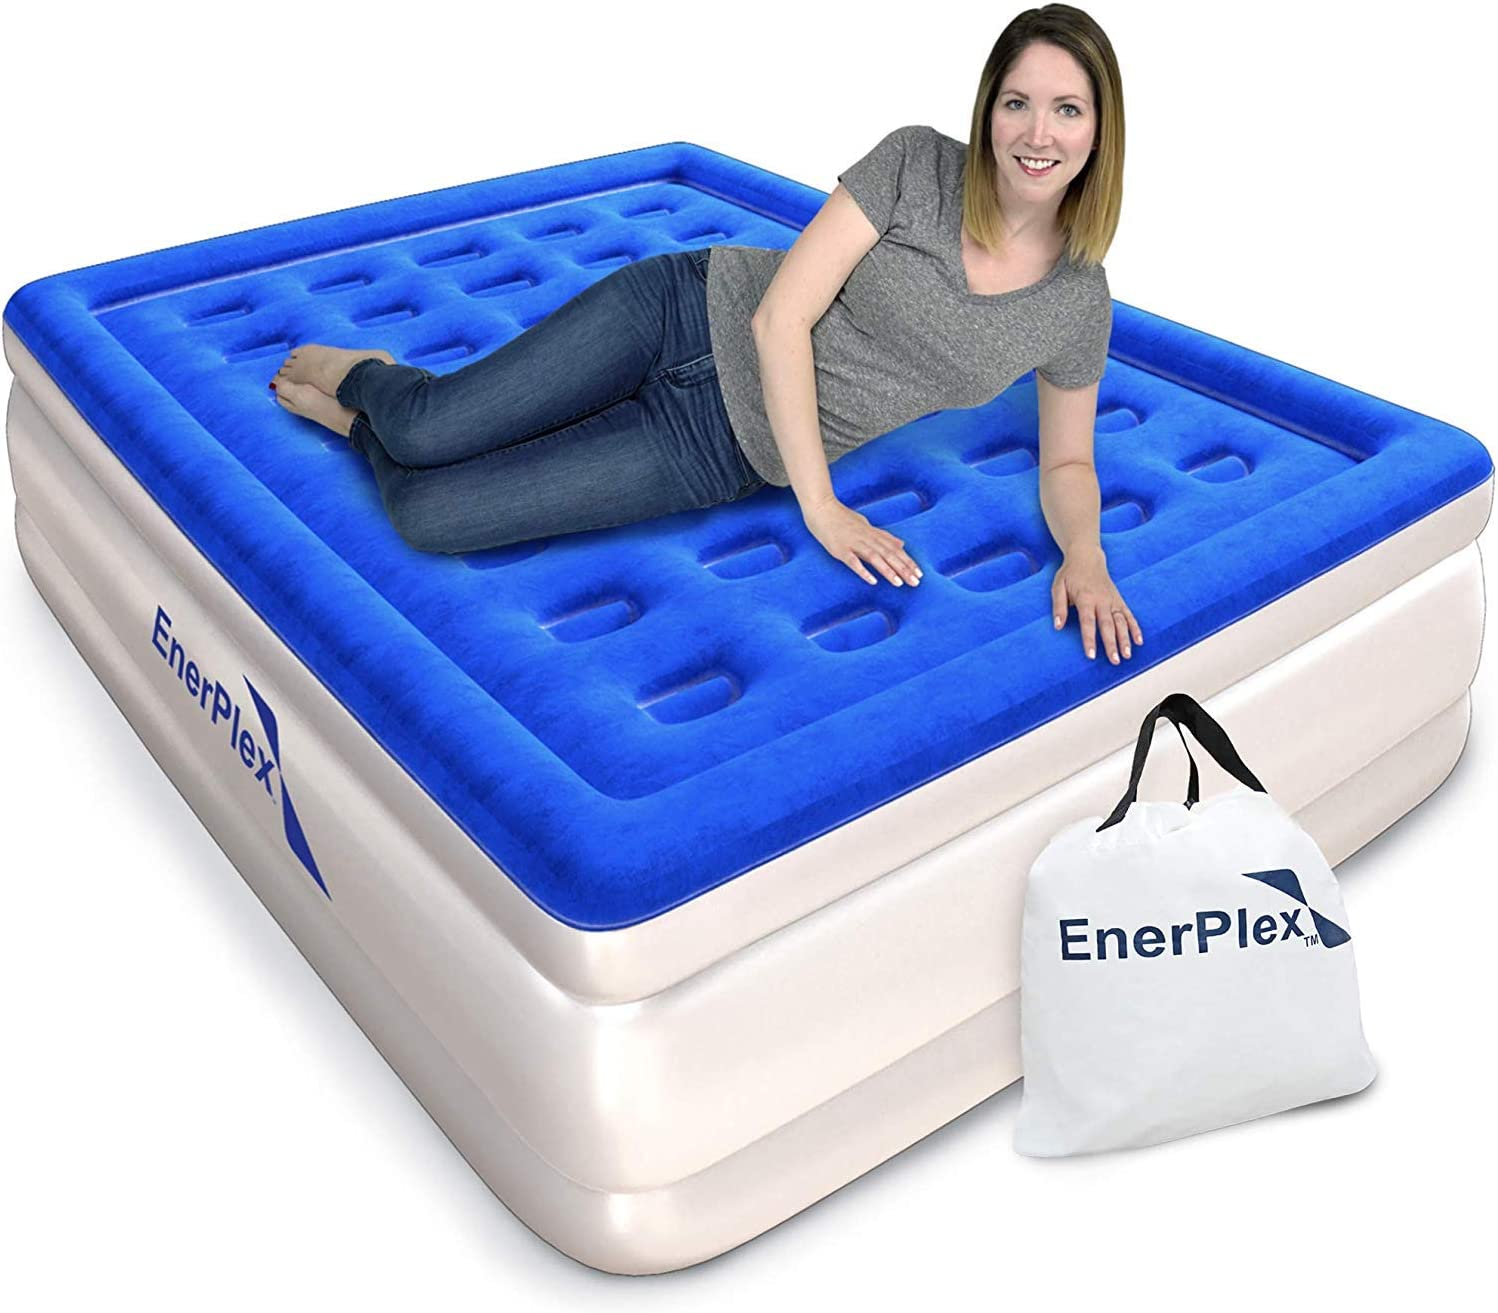 EnerPlex Premium Dual Pump Luxury Queen Size Air Mattress Airbed with Built in Pump Raised Double High Queen Blow Up Bed for Home Camping Travel 2-Year Warranty: Kitchen & Dining